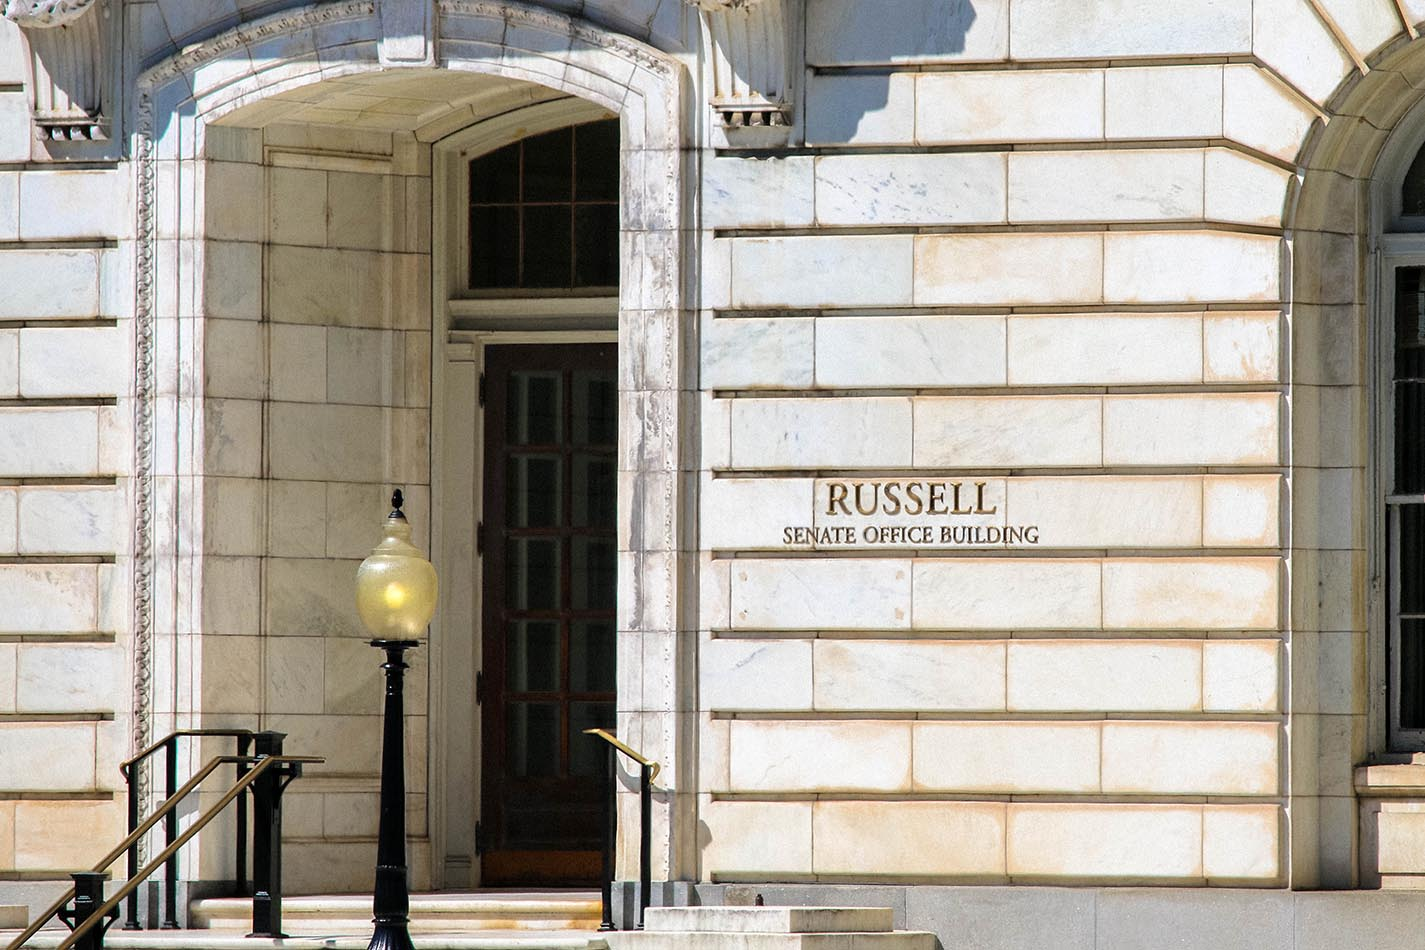 Russell Senate Office Building in Capitol Hill, Washington, DC